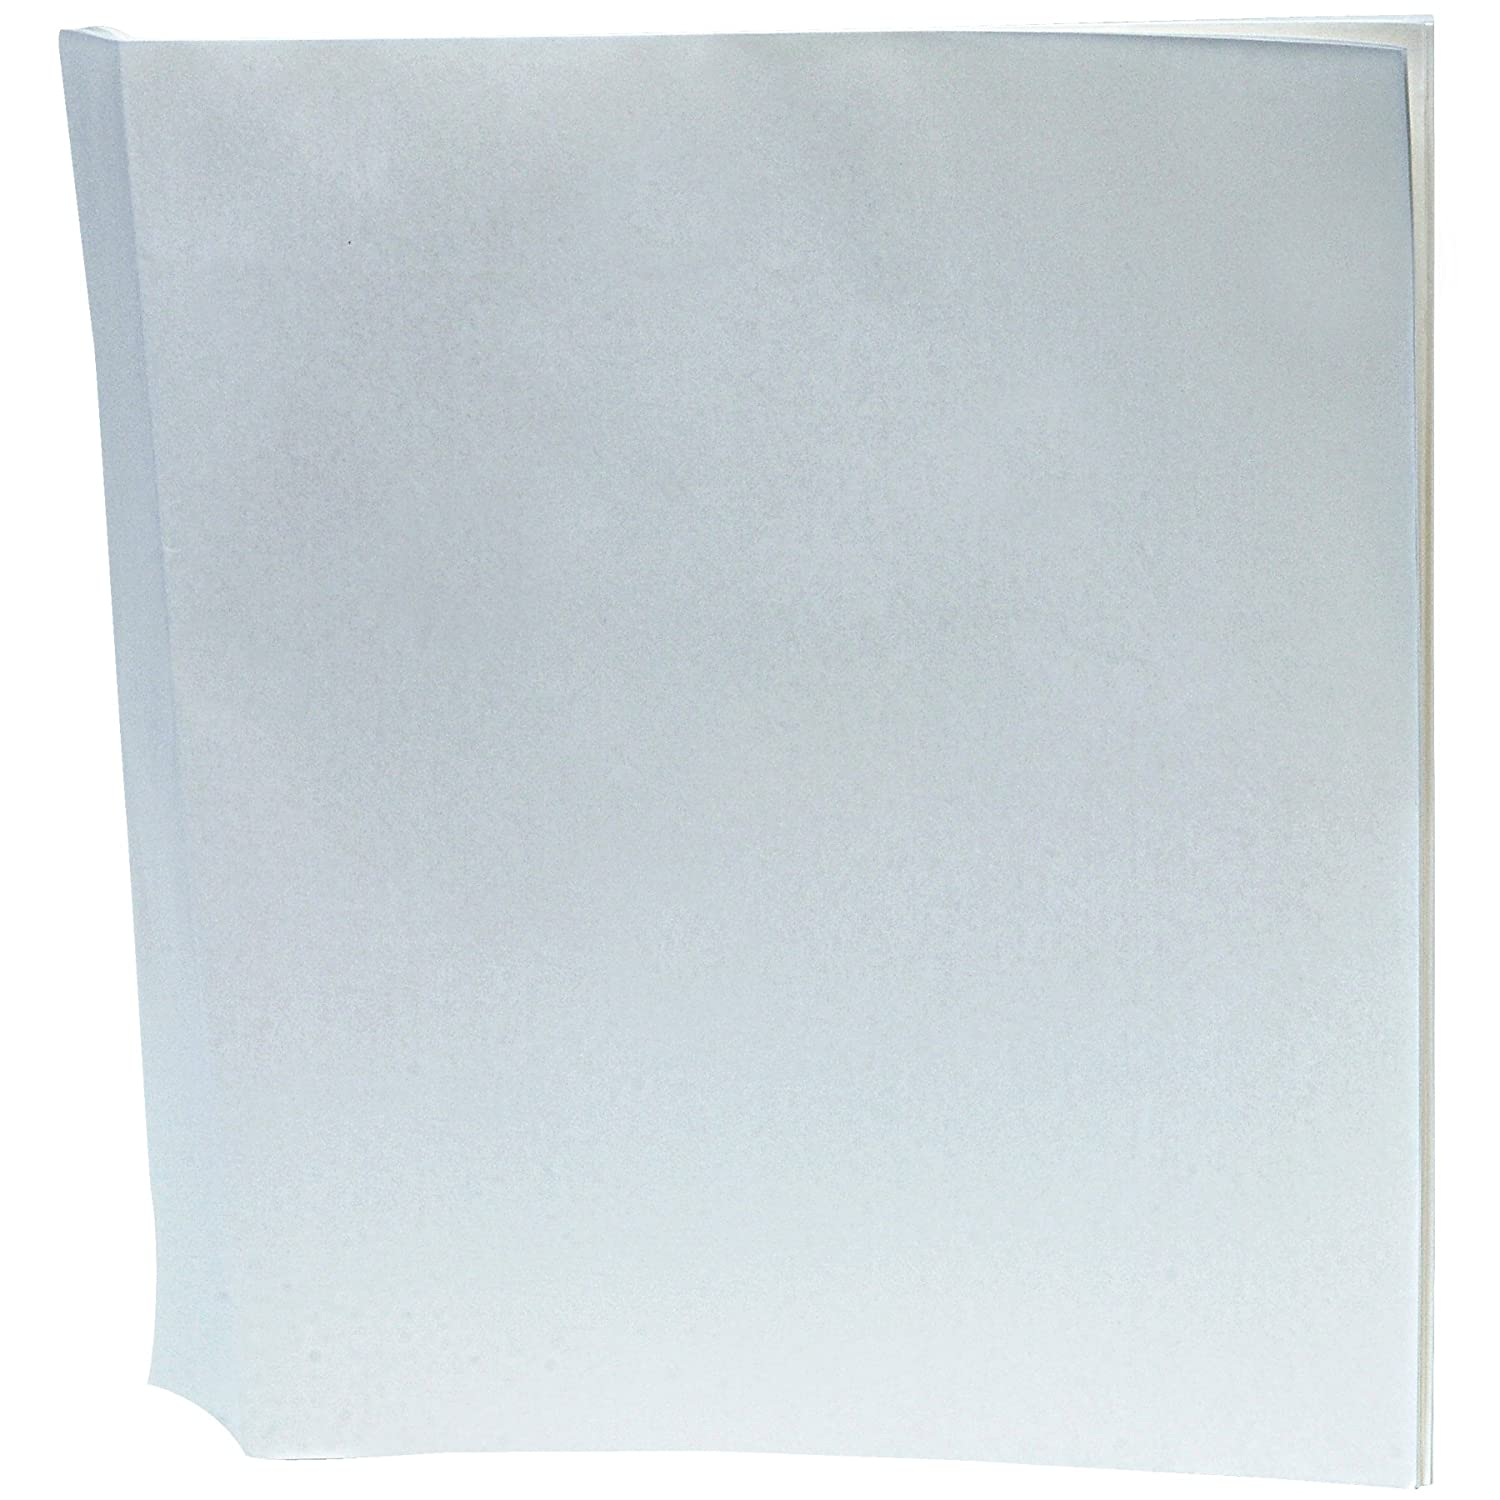 Dixie Freshgard Freezer Paper Sheets by Georgia-Pacific with Average Protection (6-9 Mo), FG1215, 12in x 15in, White, (1000 Sheets per Case)